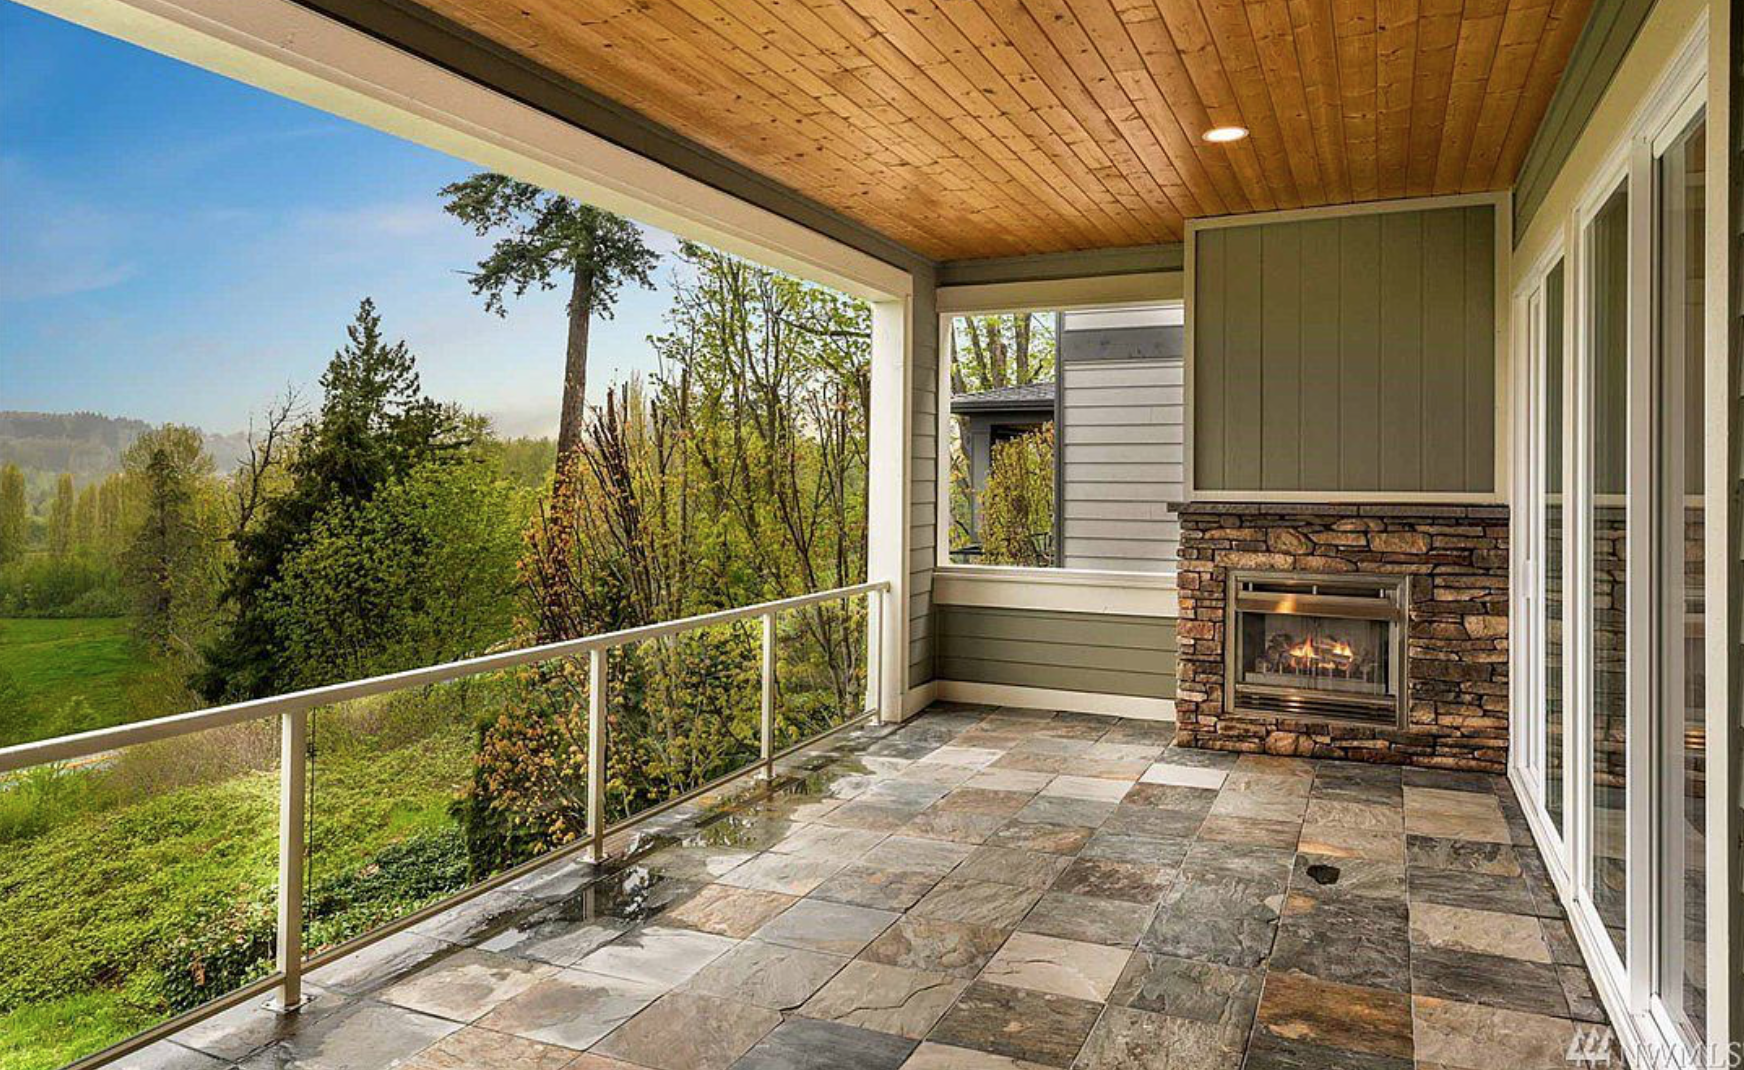 Each floor of this brand new home is complete with an expansive private terrace which allows for stunning west facing views of the Sammamish Valley and Burke-Gilman trail!